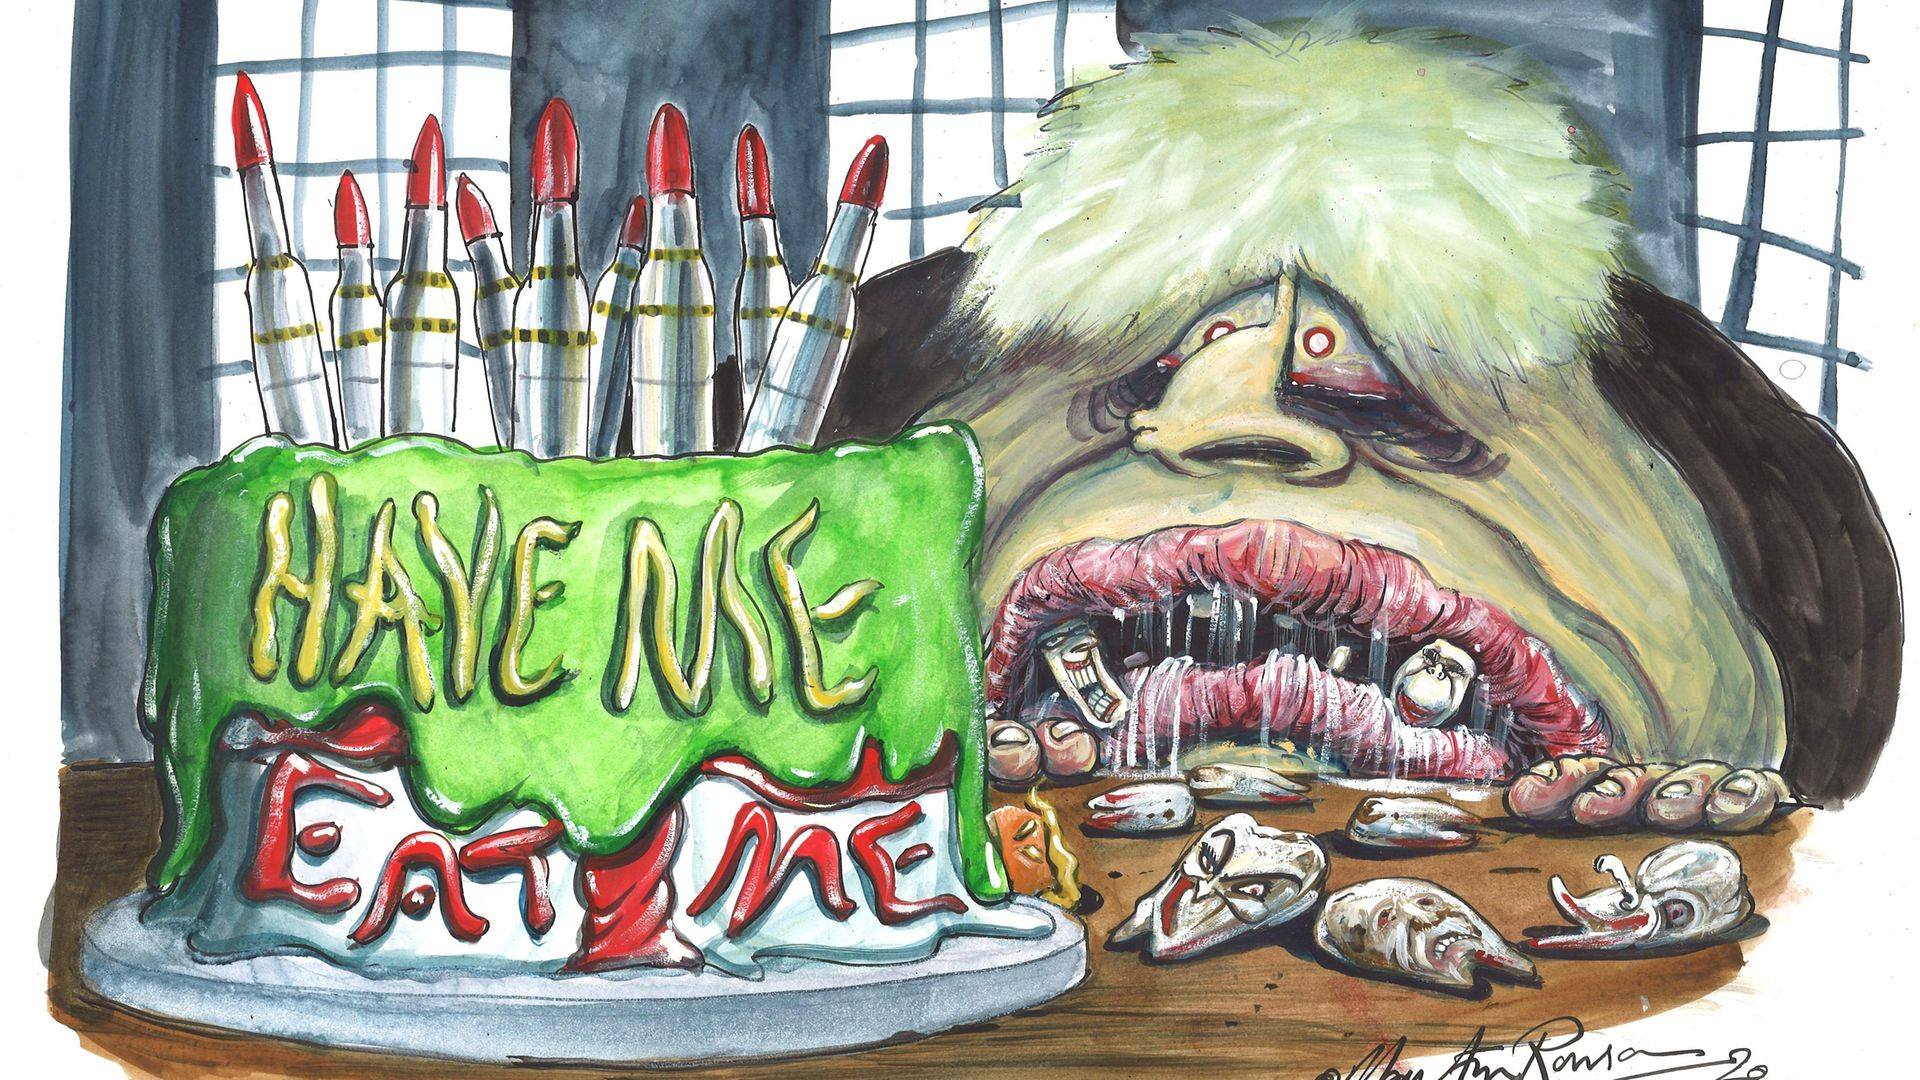 Boris Johnson wants to have his cake and eat it. - Credit: Martin Rowson